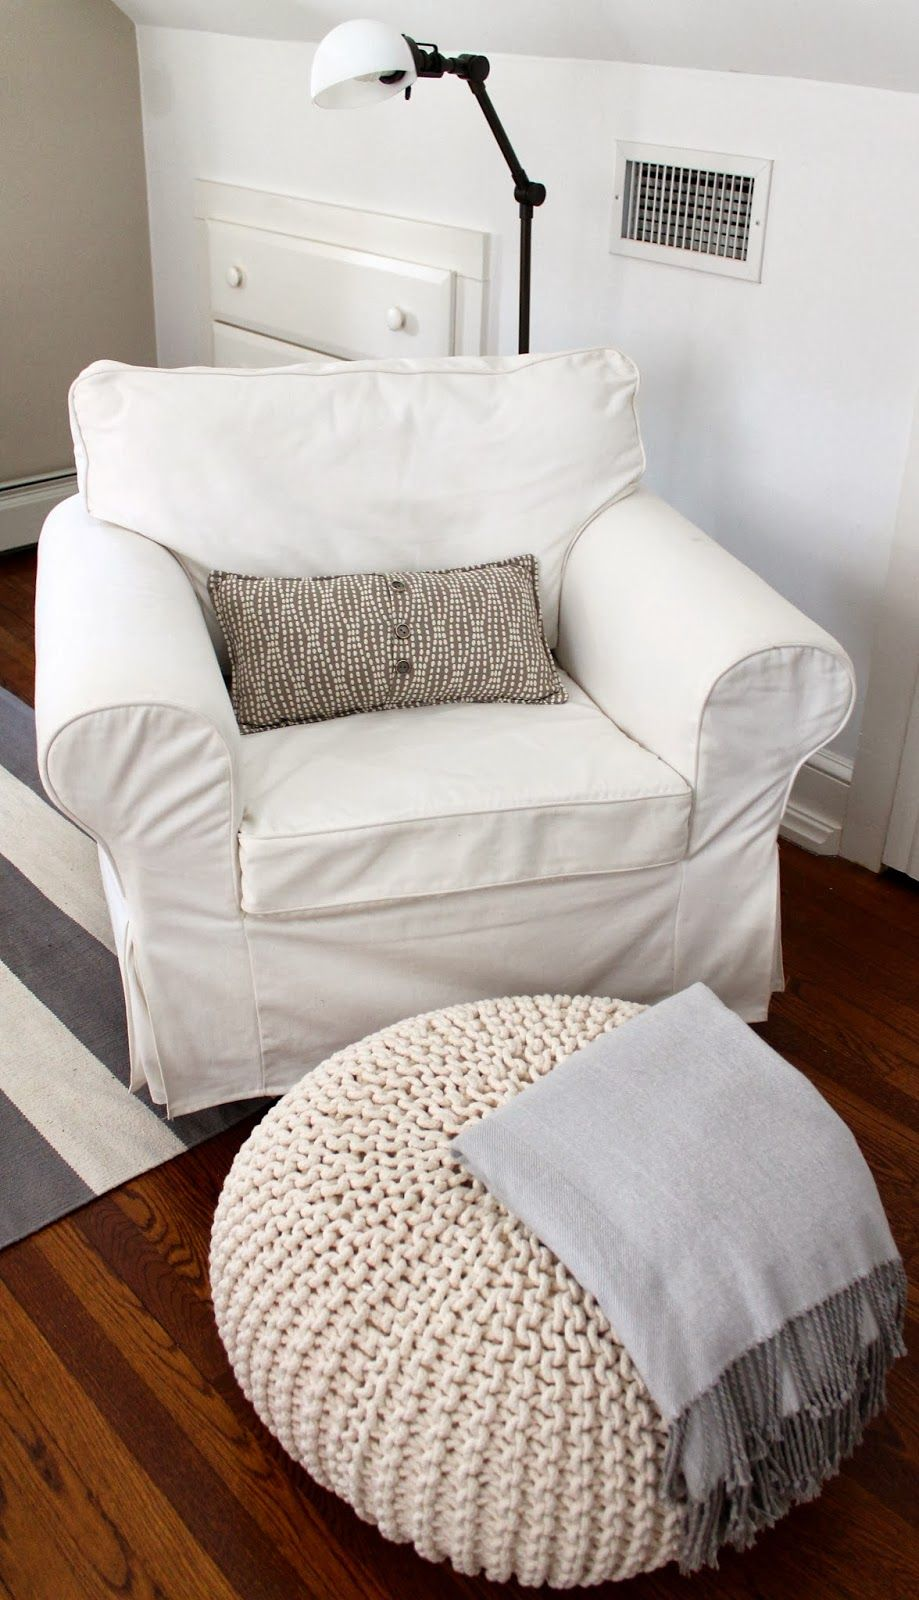 DIY armchair glider -the picket fence projects: I wanna rock! | ikea ...